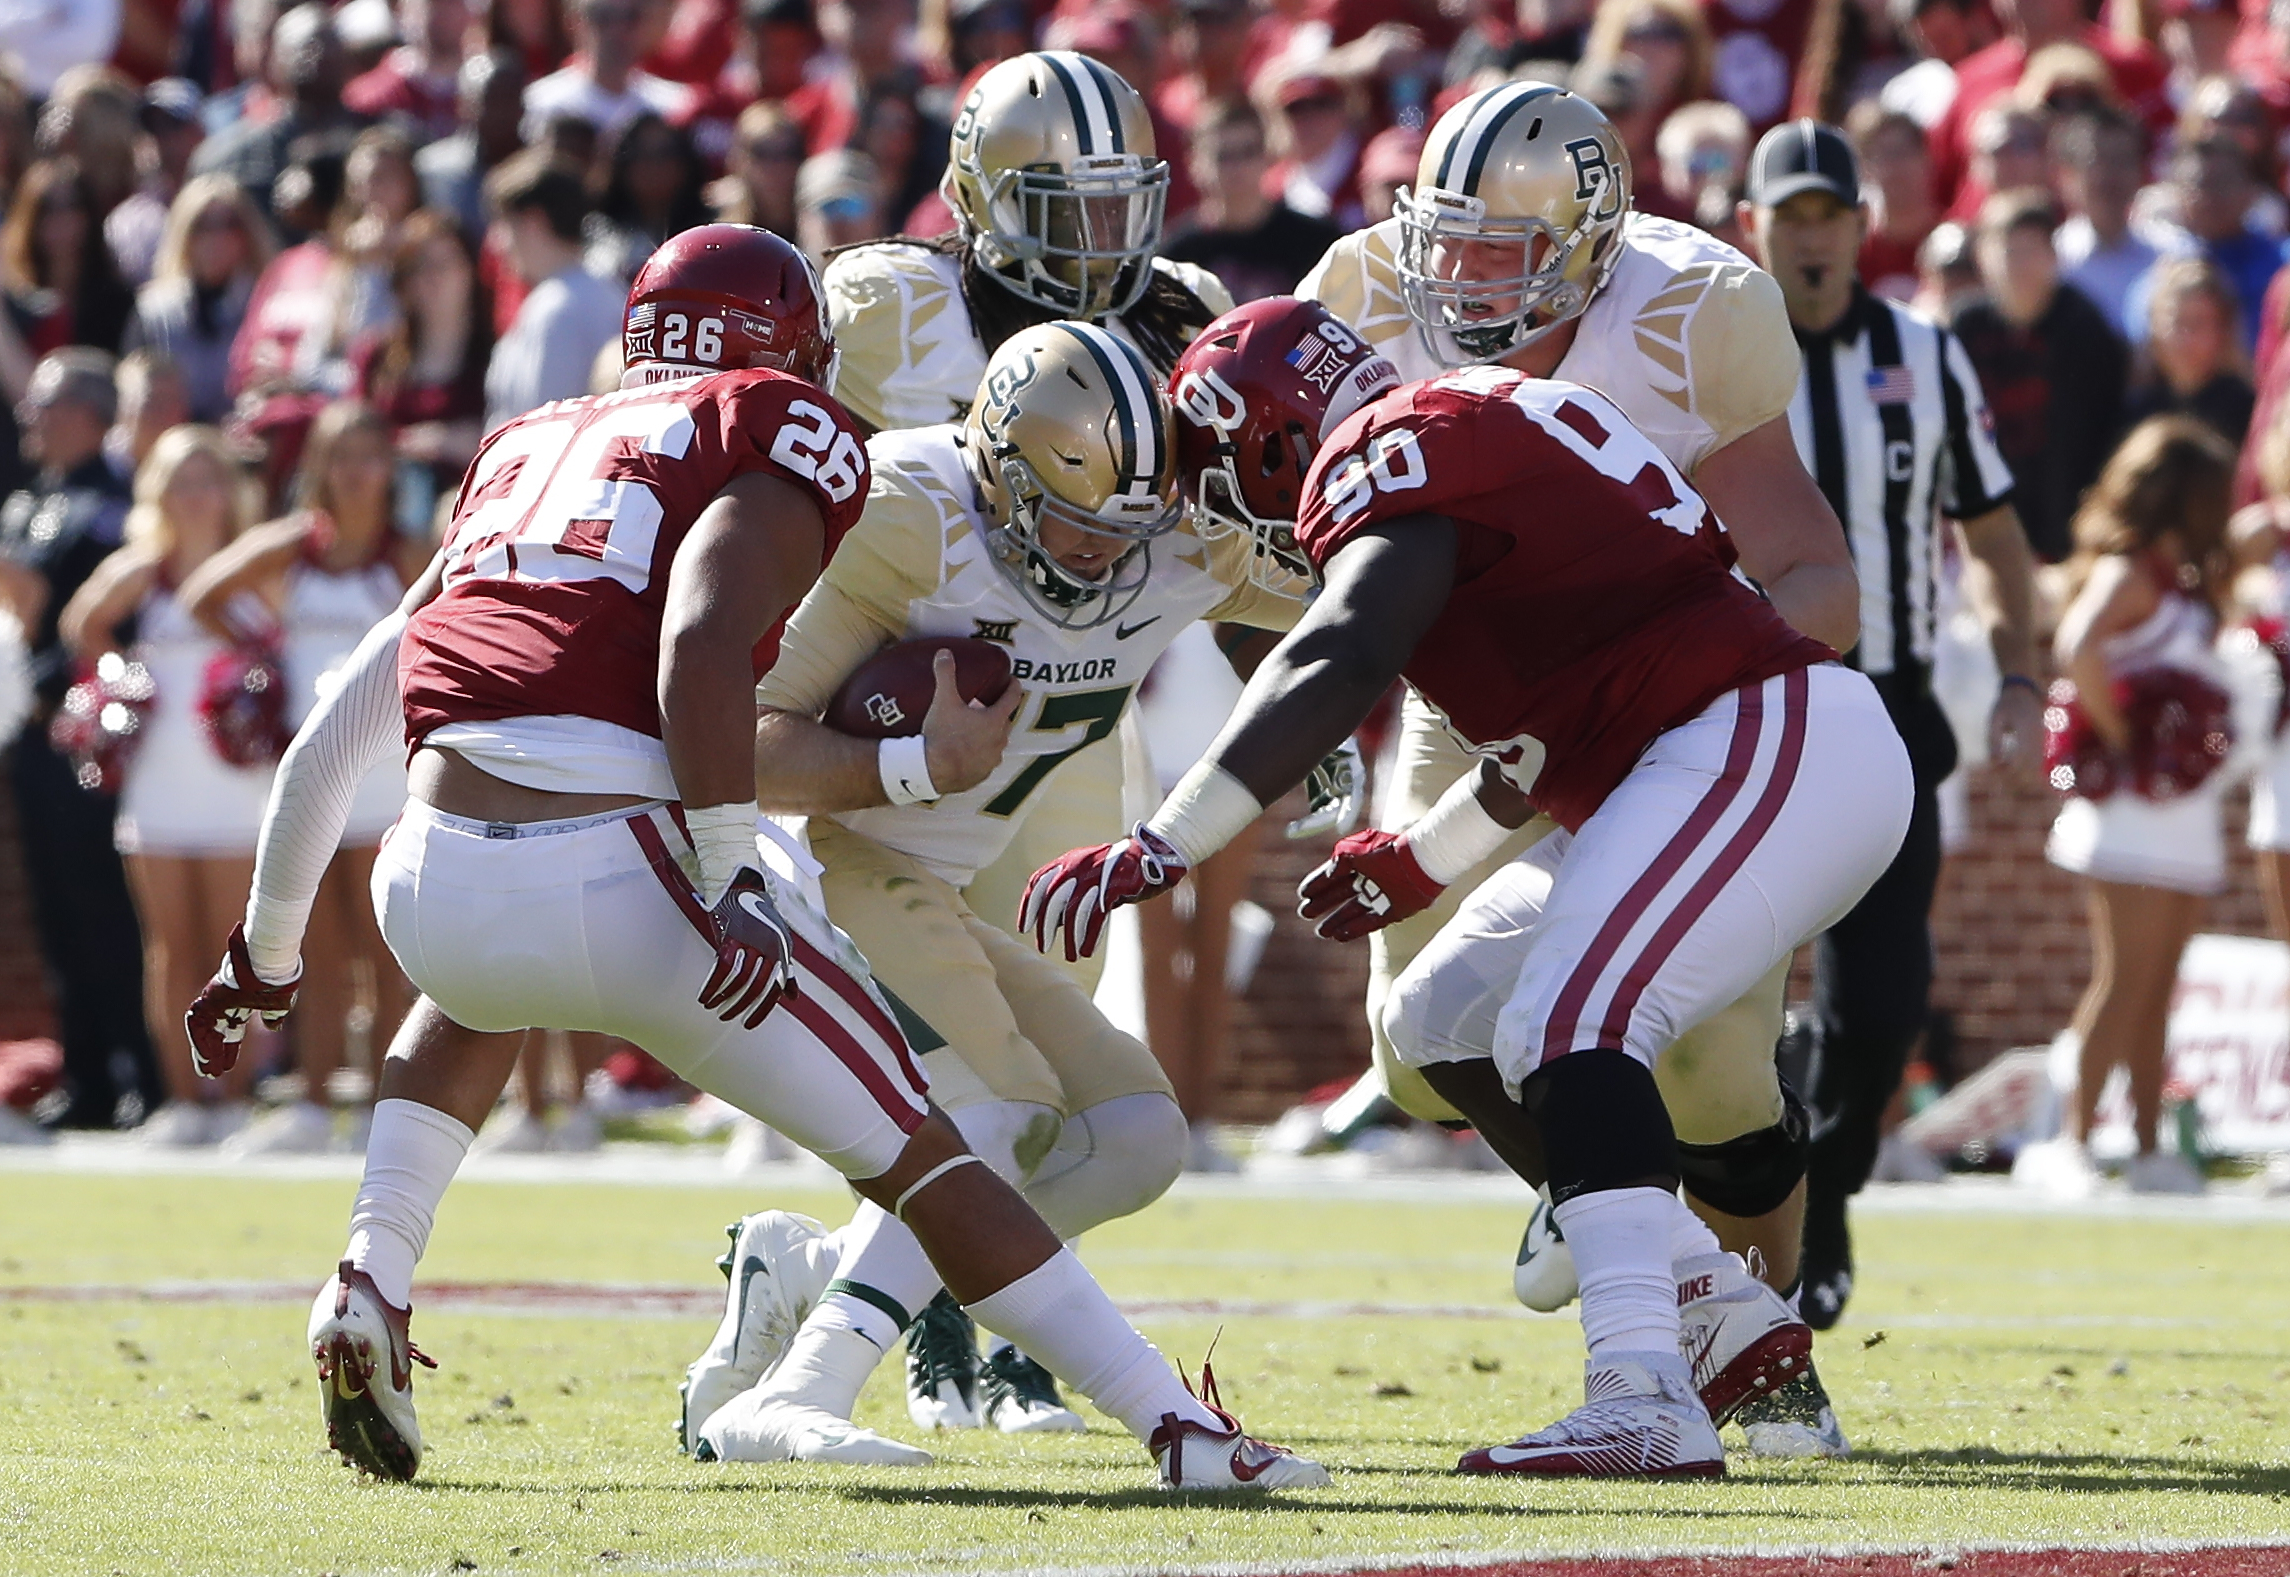 Oklahoma linebacker Jordan Evans (26) and defensive lineman Neville Gallimore (90) stop Baylor quarterback Seth Russell (17) during the first half of an NCAA college football game in Norman, Okla. on Saturday, Nov. 12, 2016. (AP Photo/Alonzo Adams)